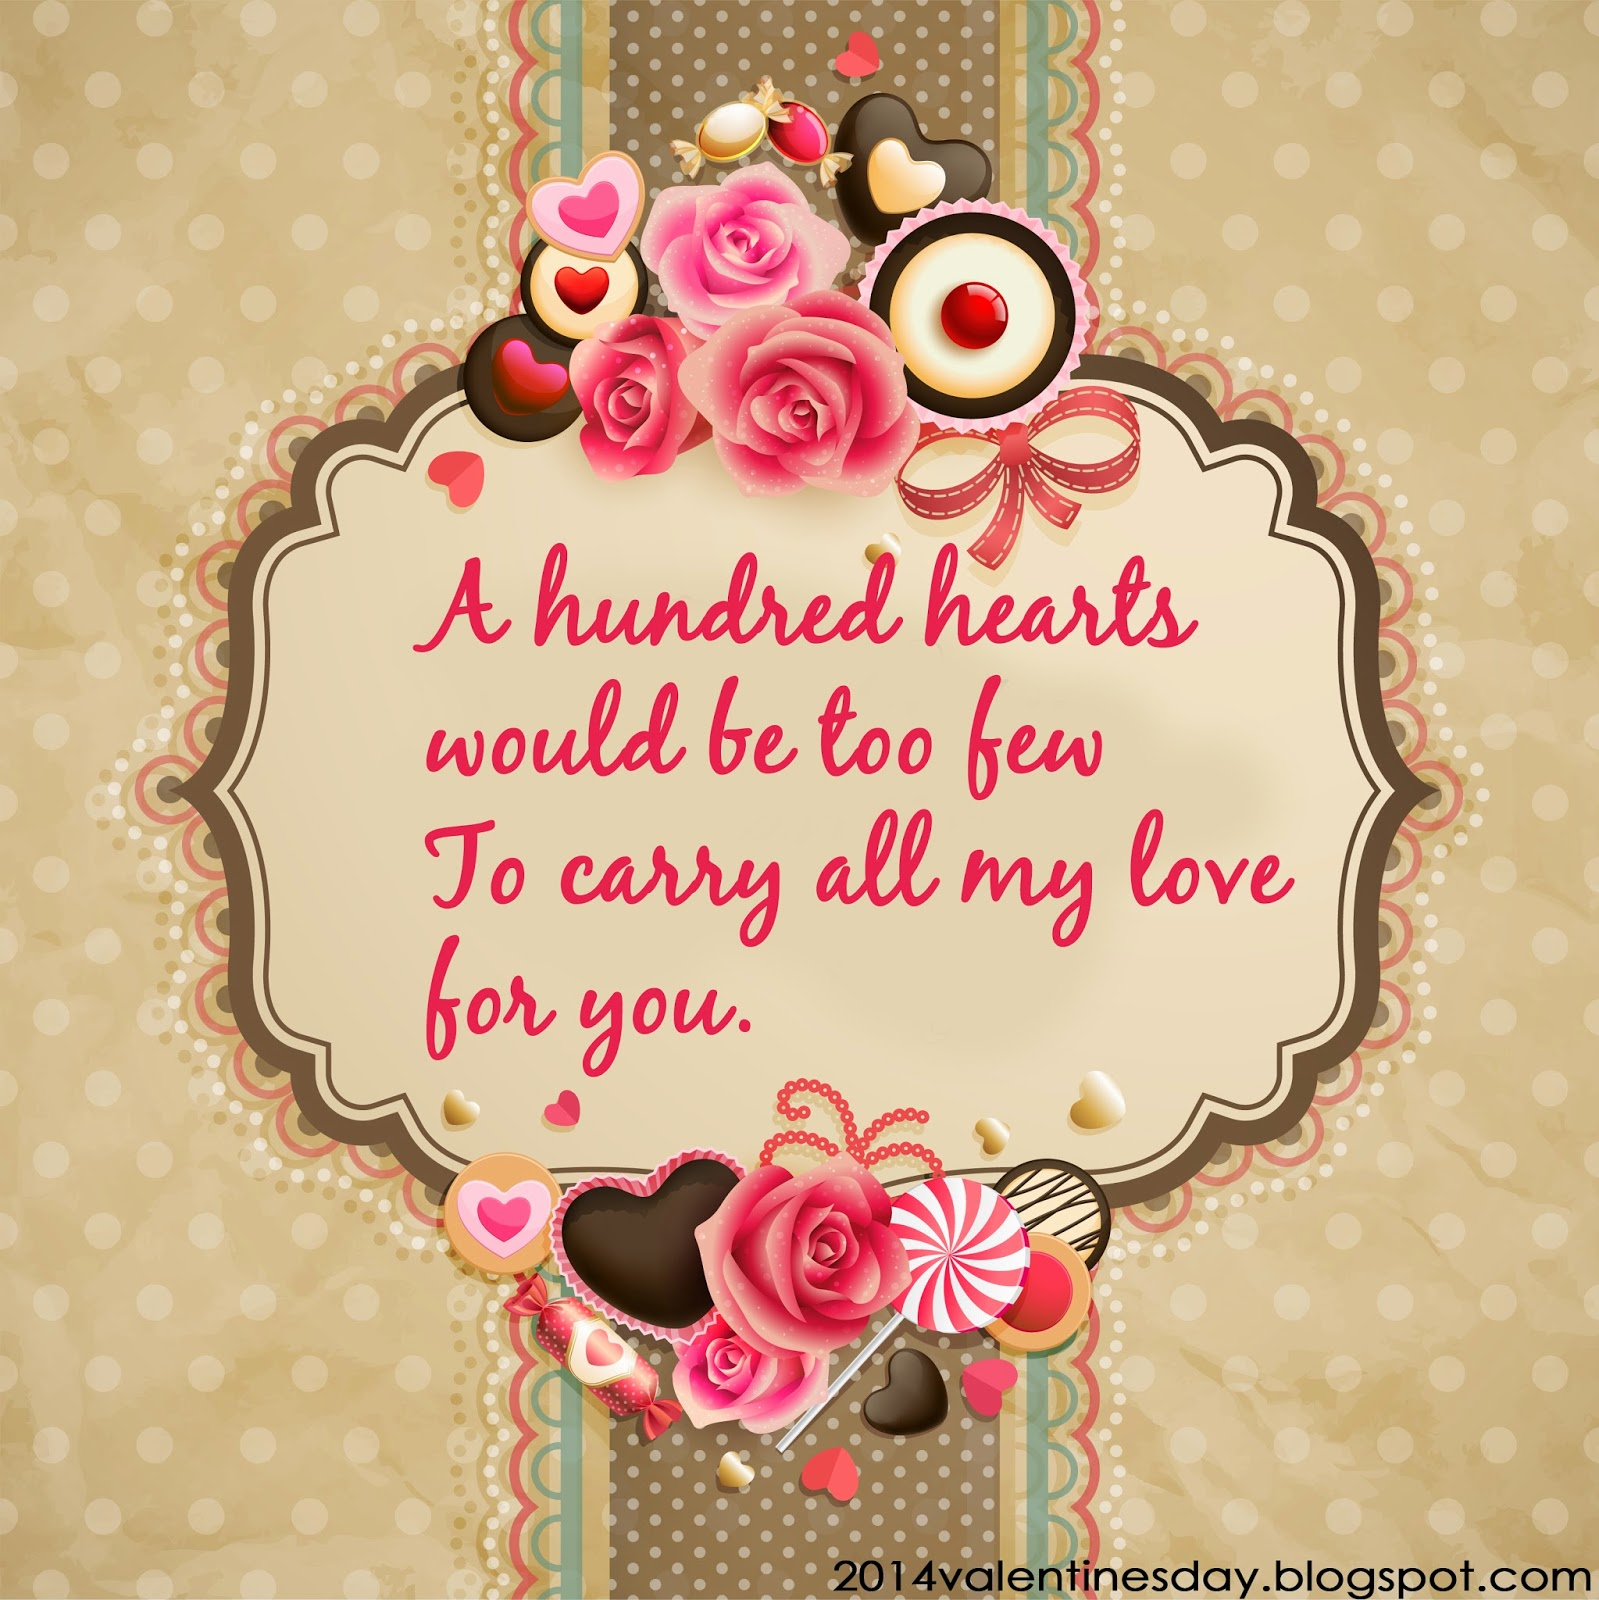 The 7 Best Valentine's Day Quotes 2016